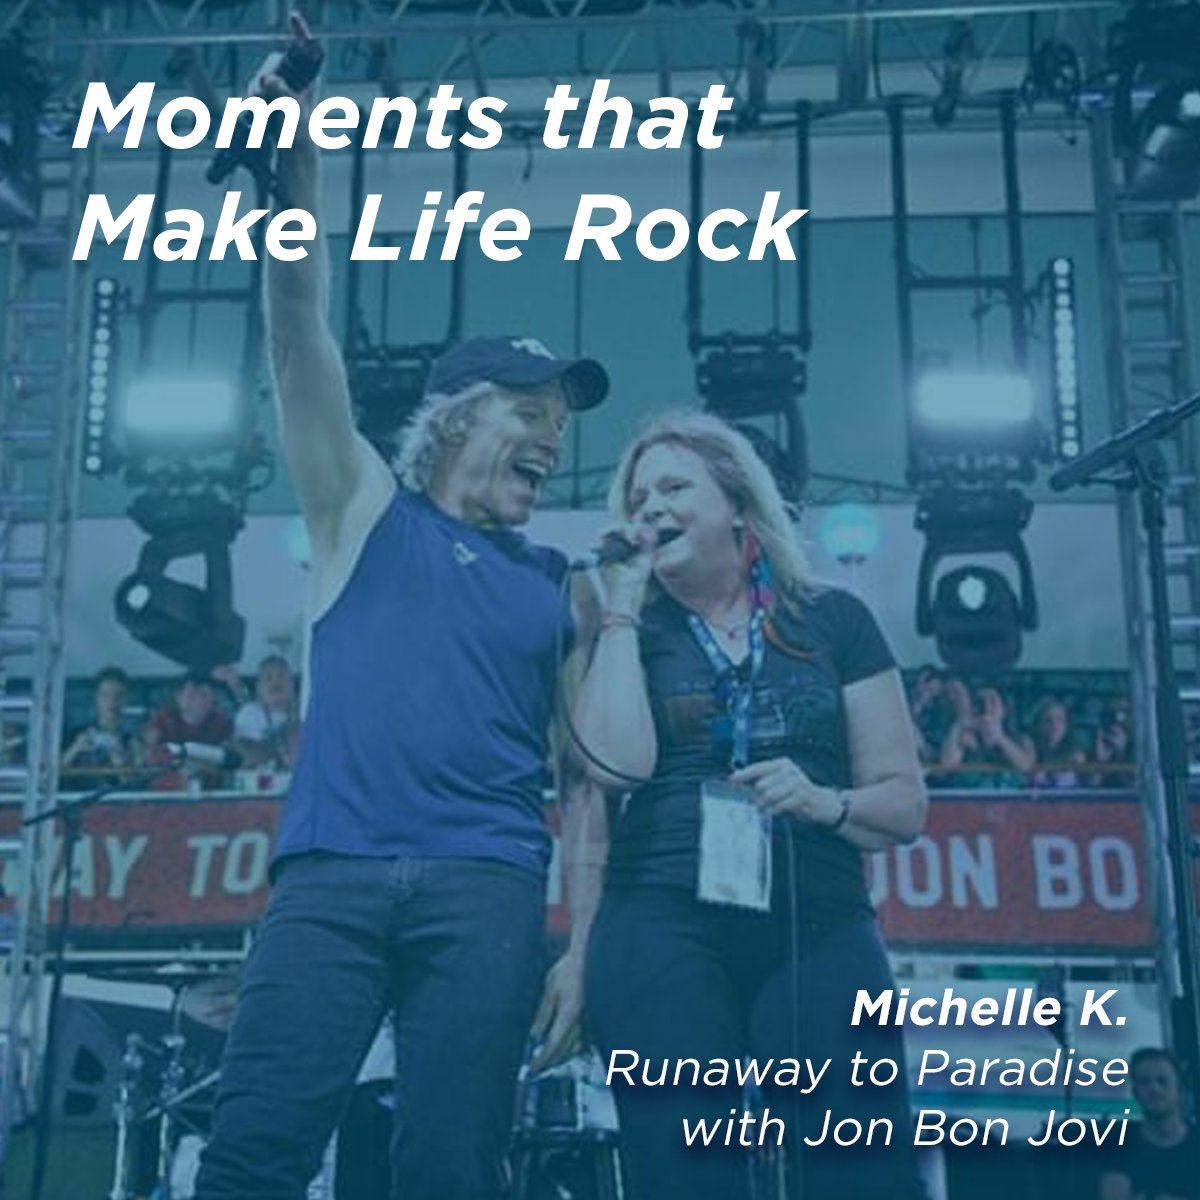 This was a once in a lifetime experience that I will be forever grateful for. - Michelle K Learn how Michelle lived her dream and got to sing next to Jon Bon Jovi himself! sixthman.net/moments #SXMLiveLoud